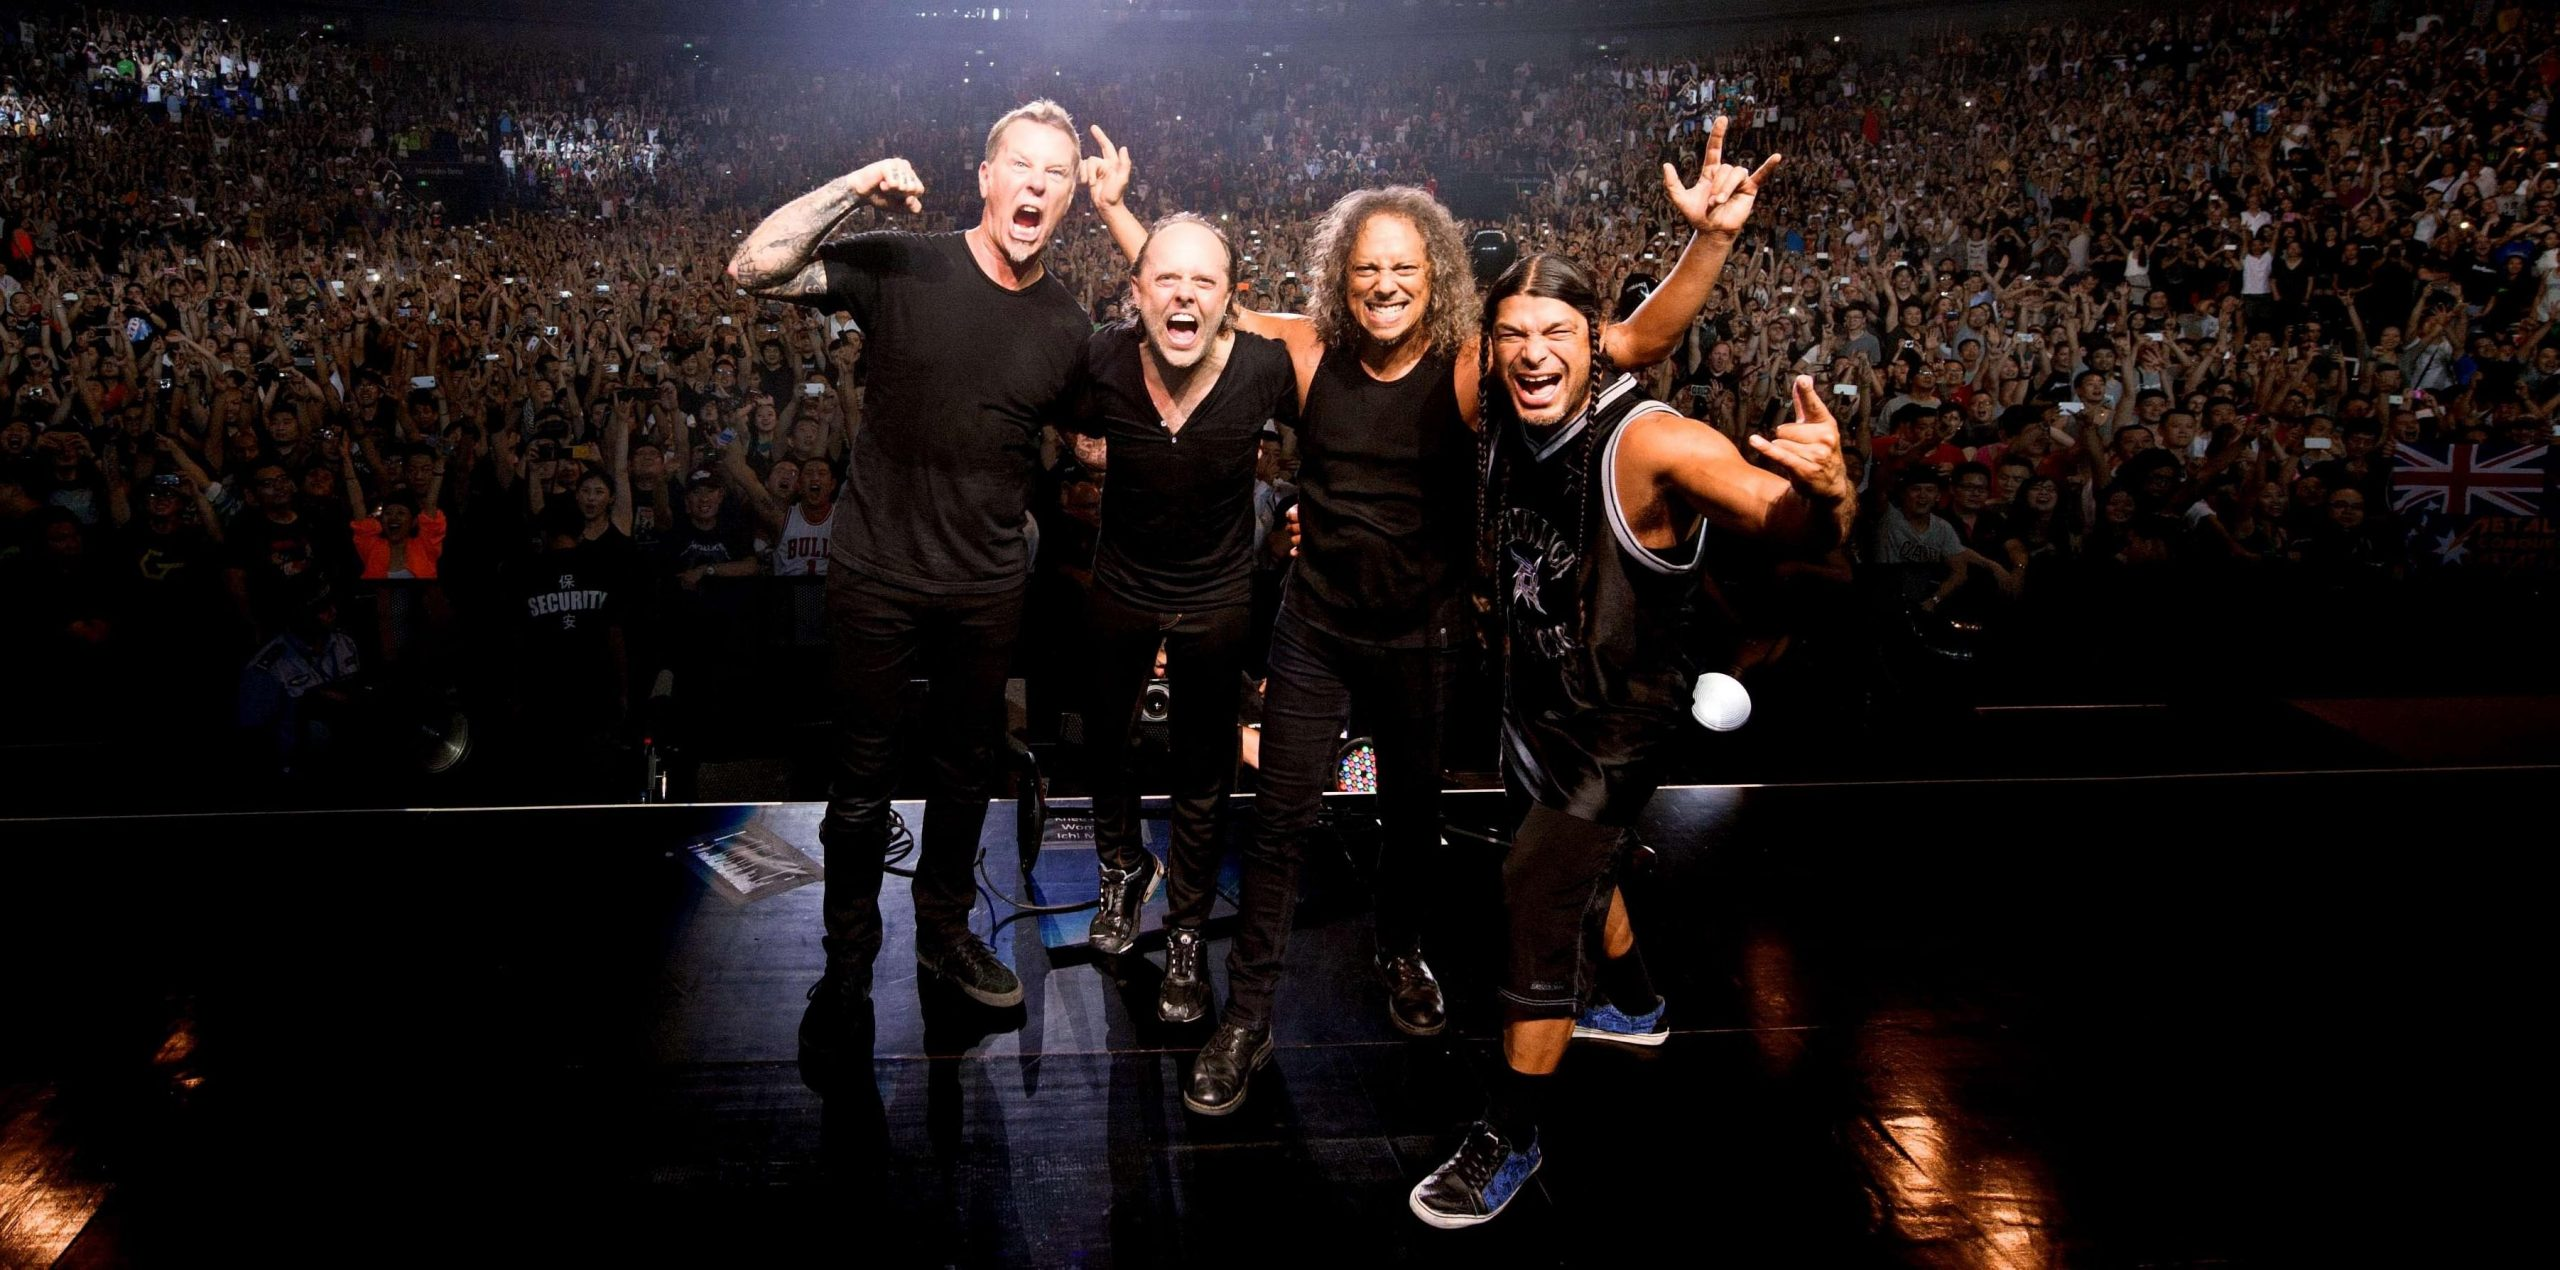 Metal monsters Metallica have inspired many Manitoba musicians.